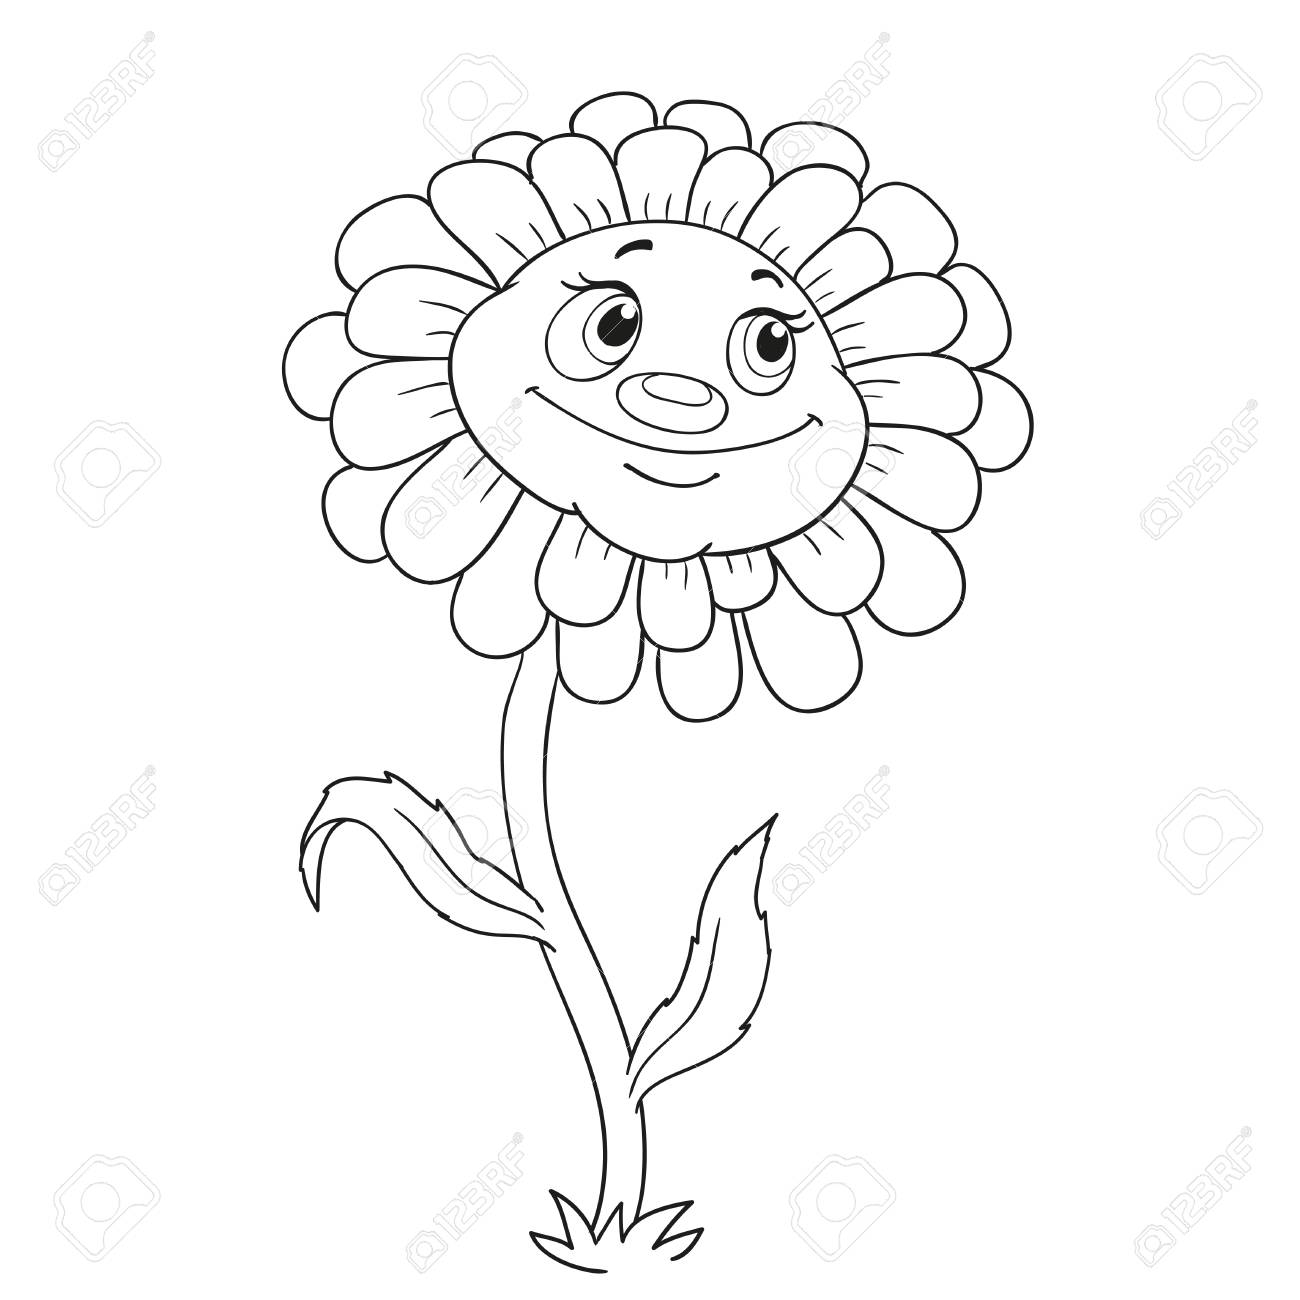 Cartoon character flower. Funny daisy for coloring book.